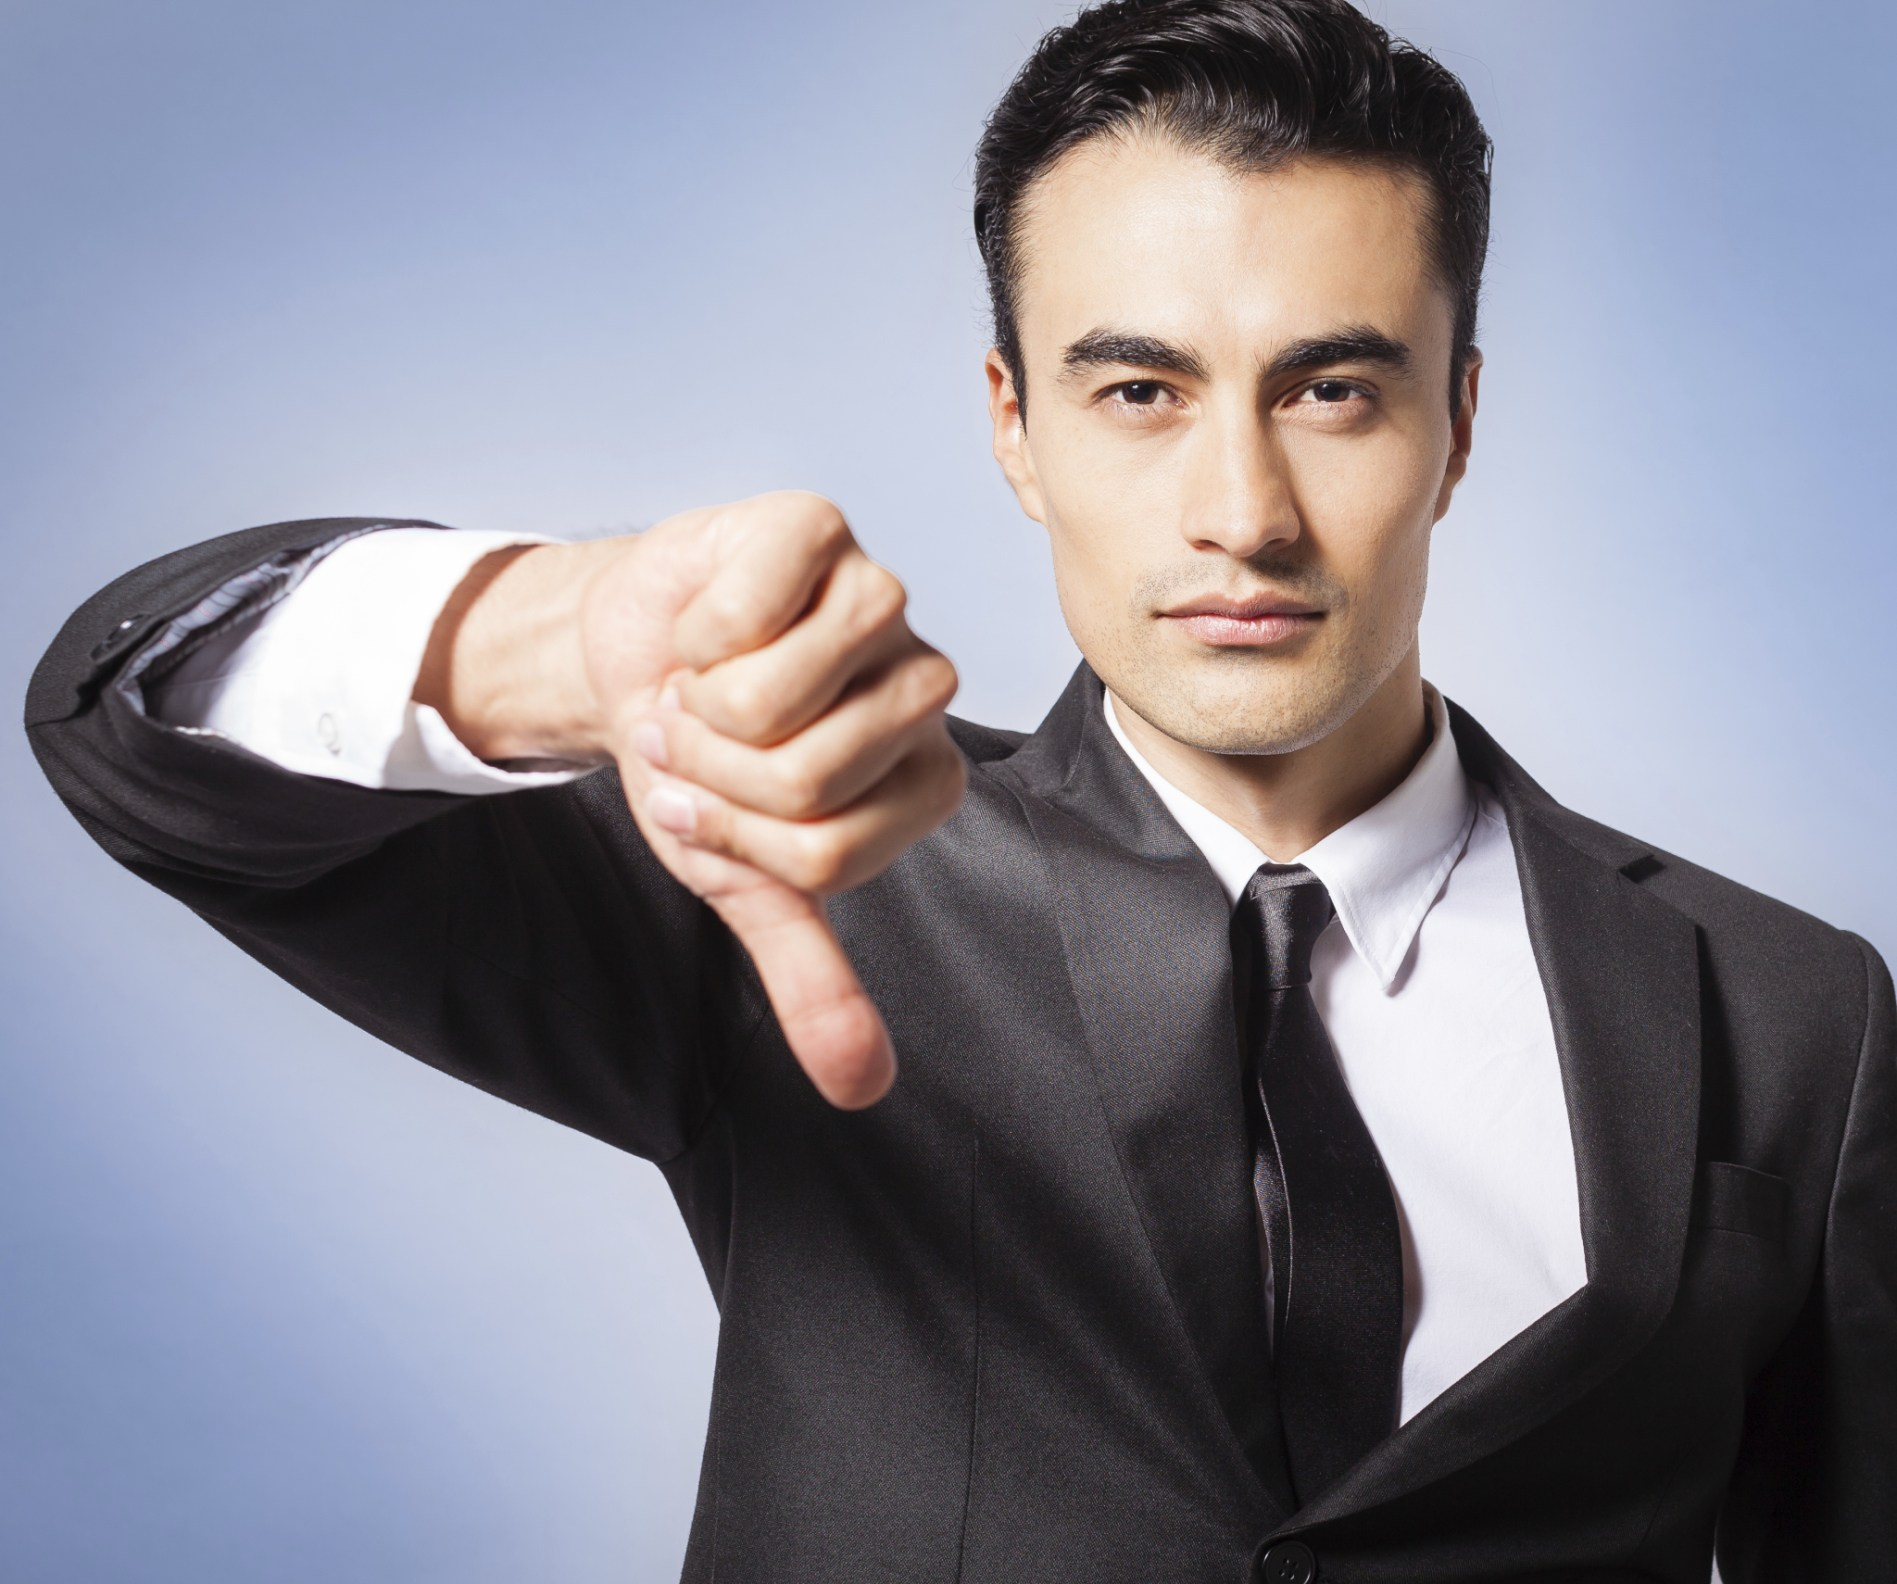 Wrongful Termination Claims - San Jose Employment Law Firm